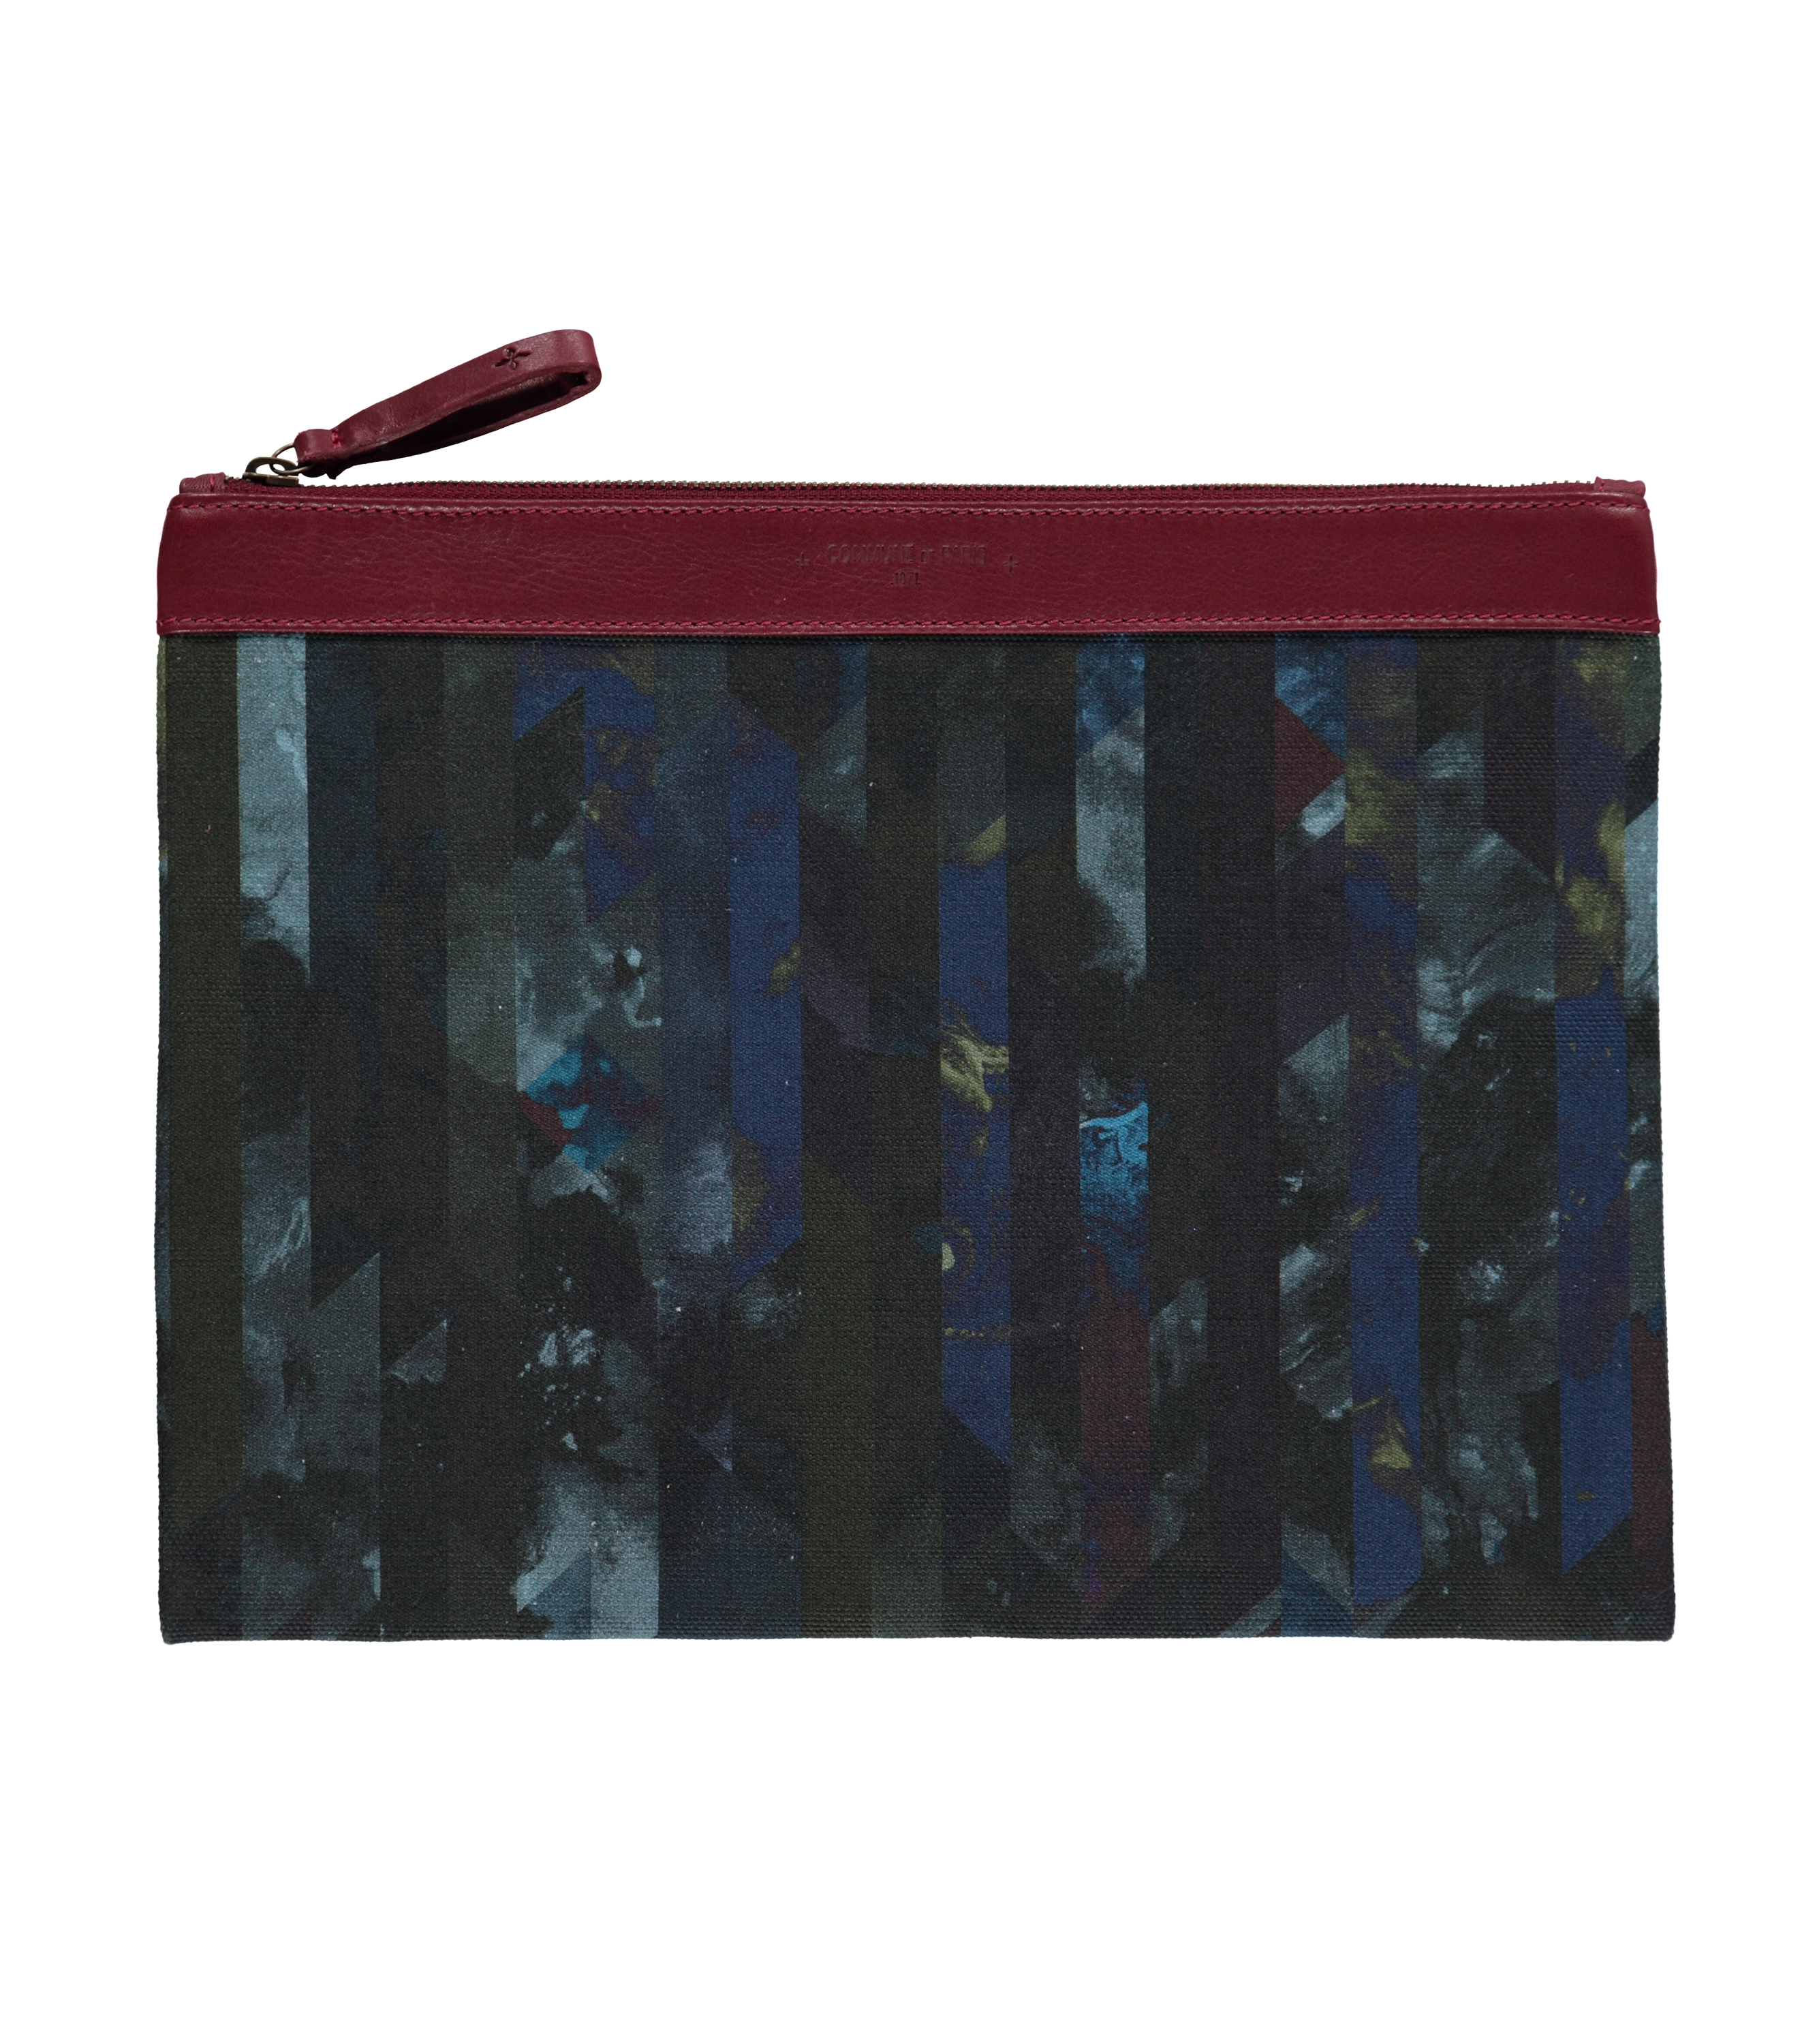 Pouch 03 MAI  - Printed canvas